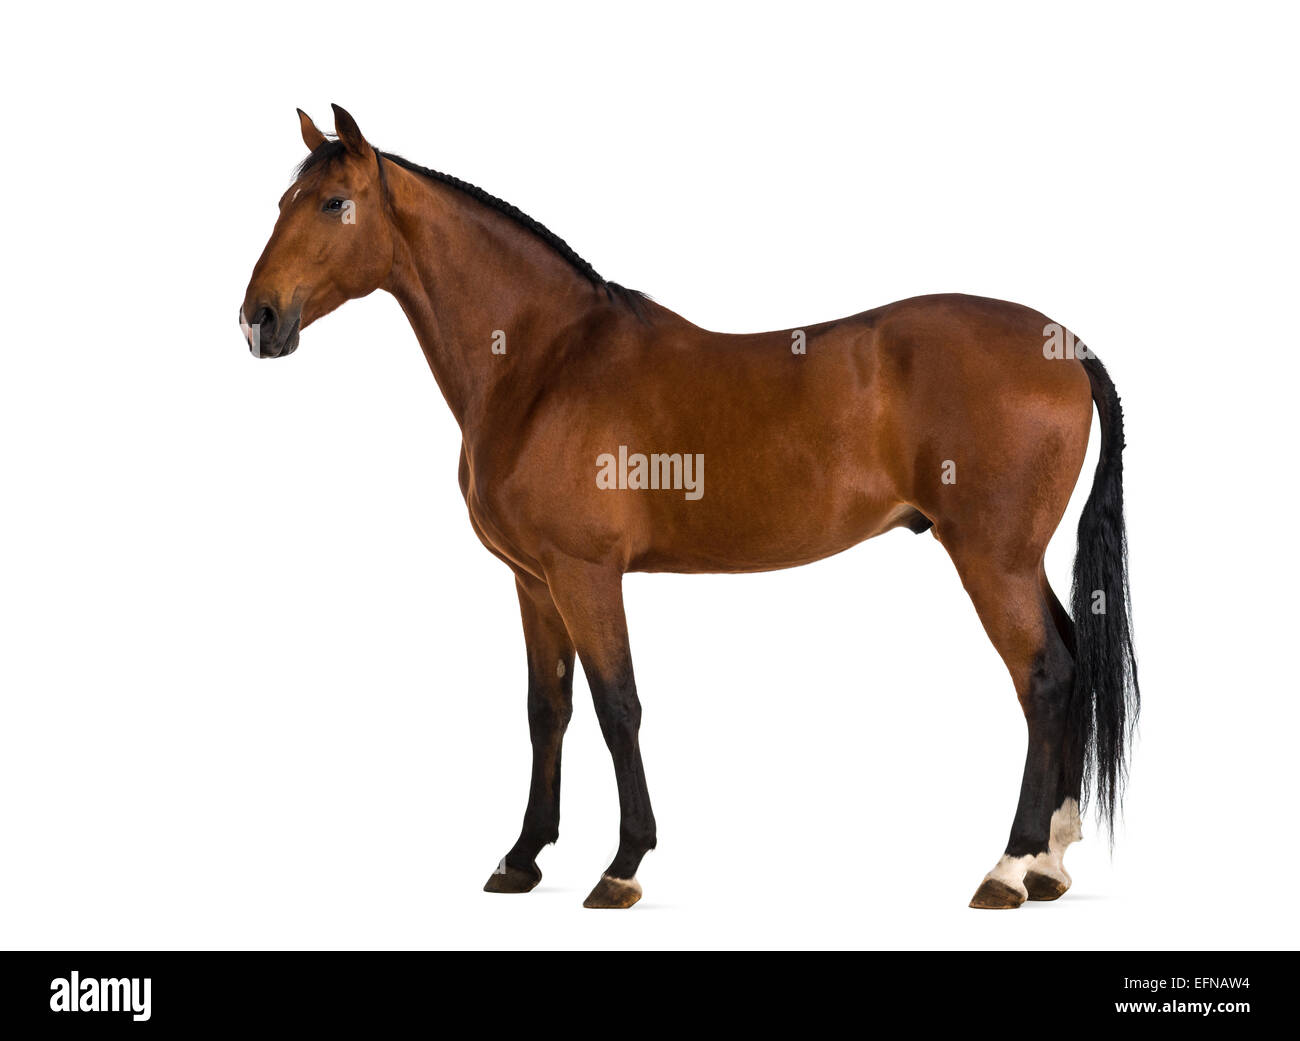 Andalusian horse against white background - Stock Image